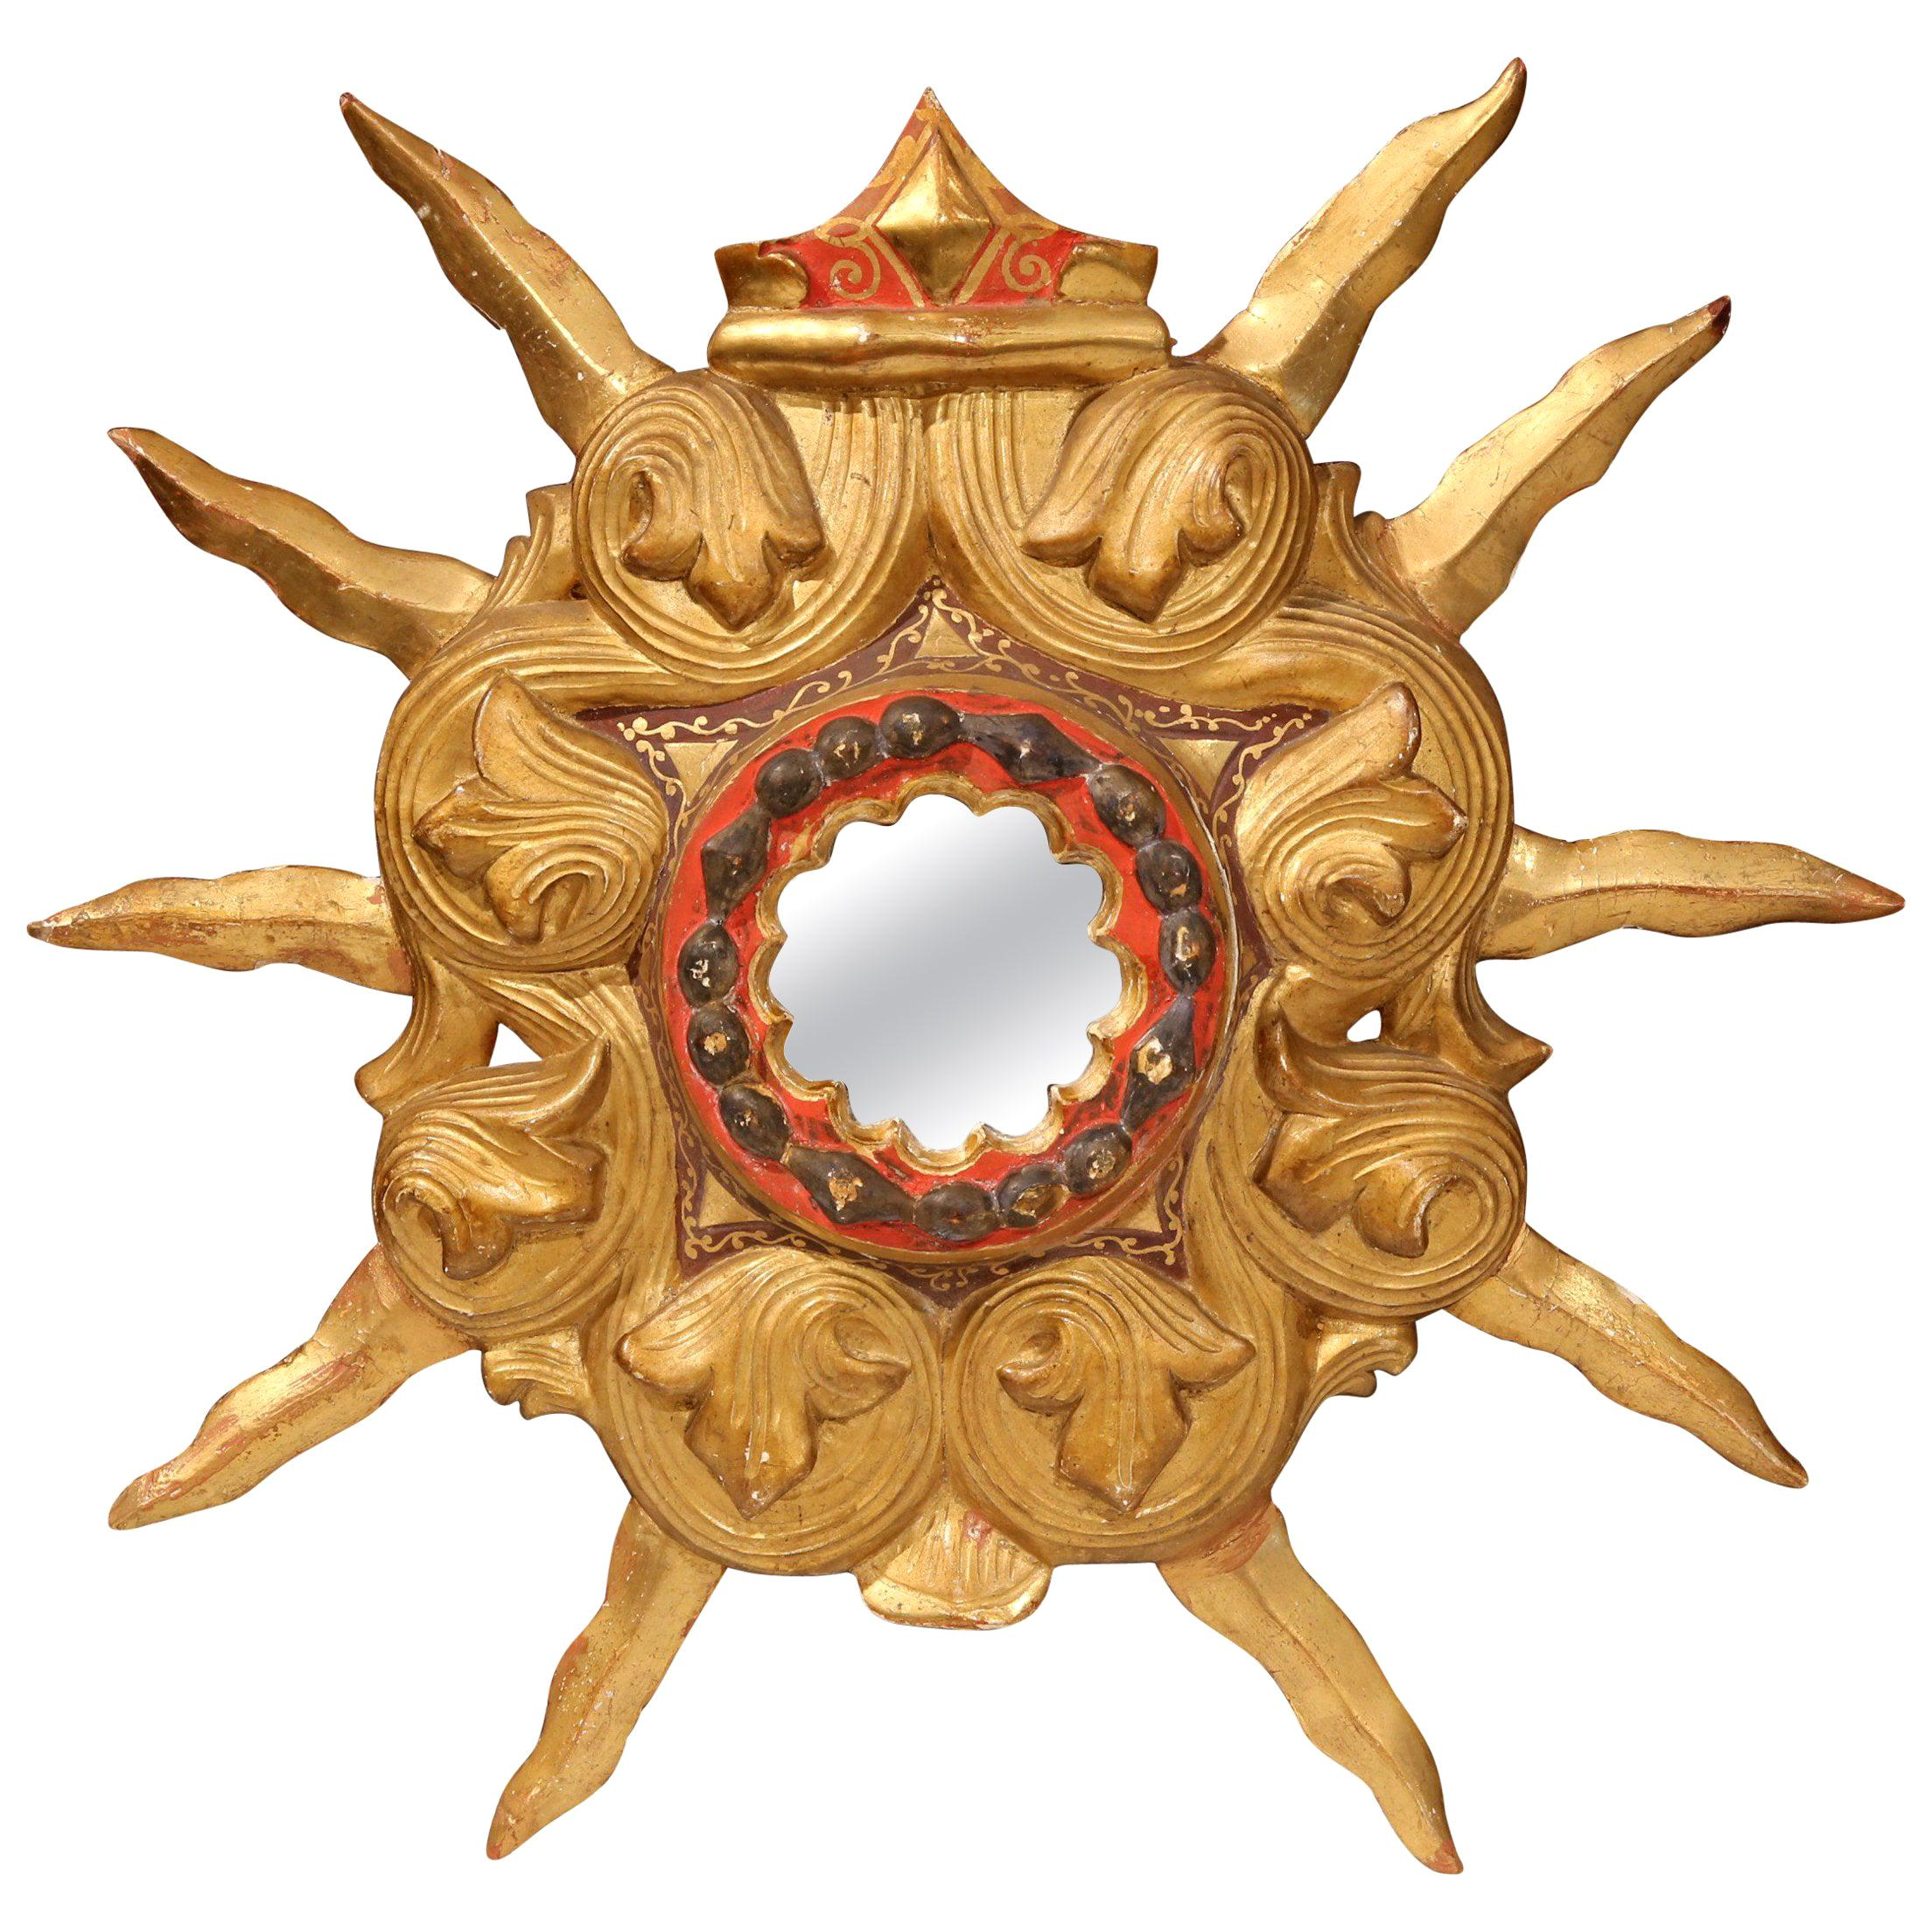 Early 20th Century French Carved Giltwood and Polychrome Sunburst Mirror